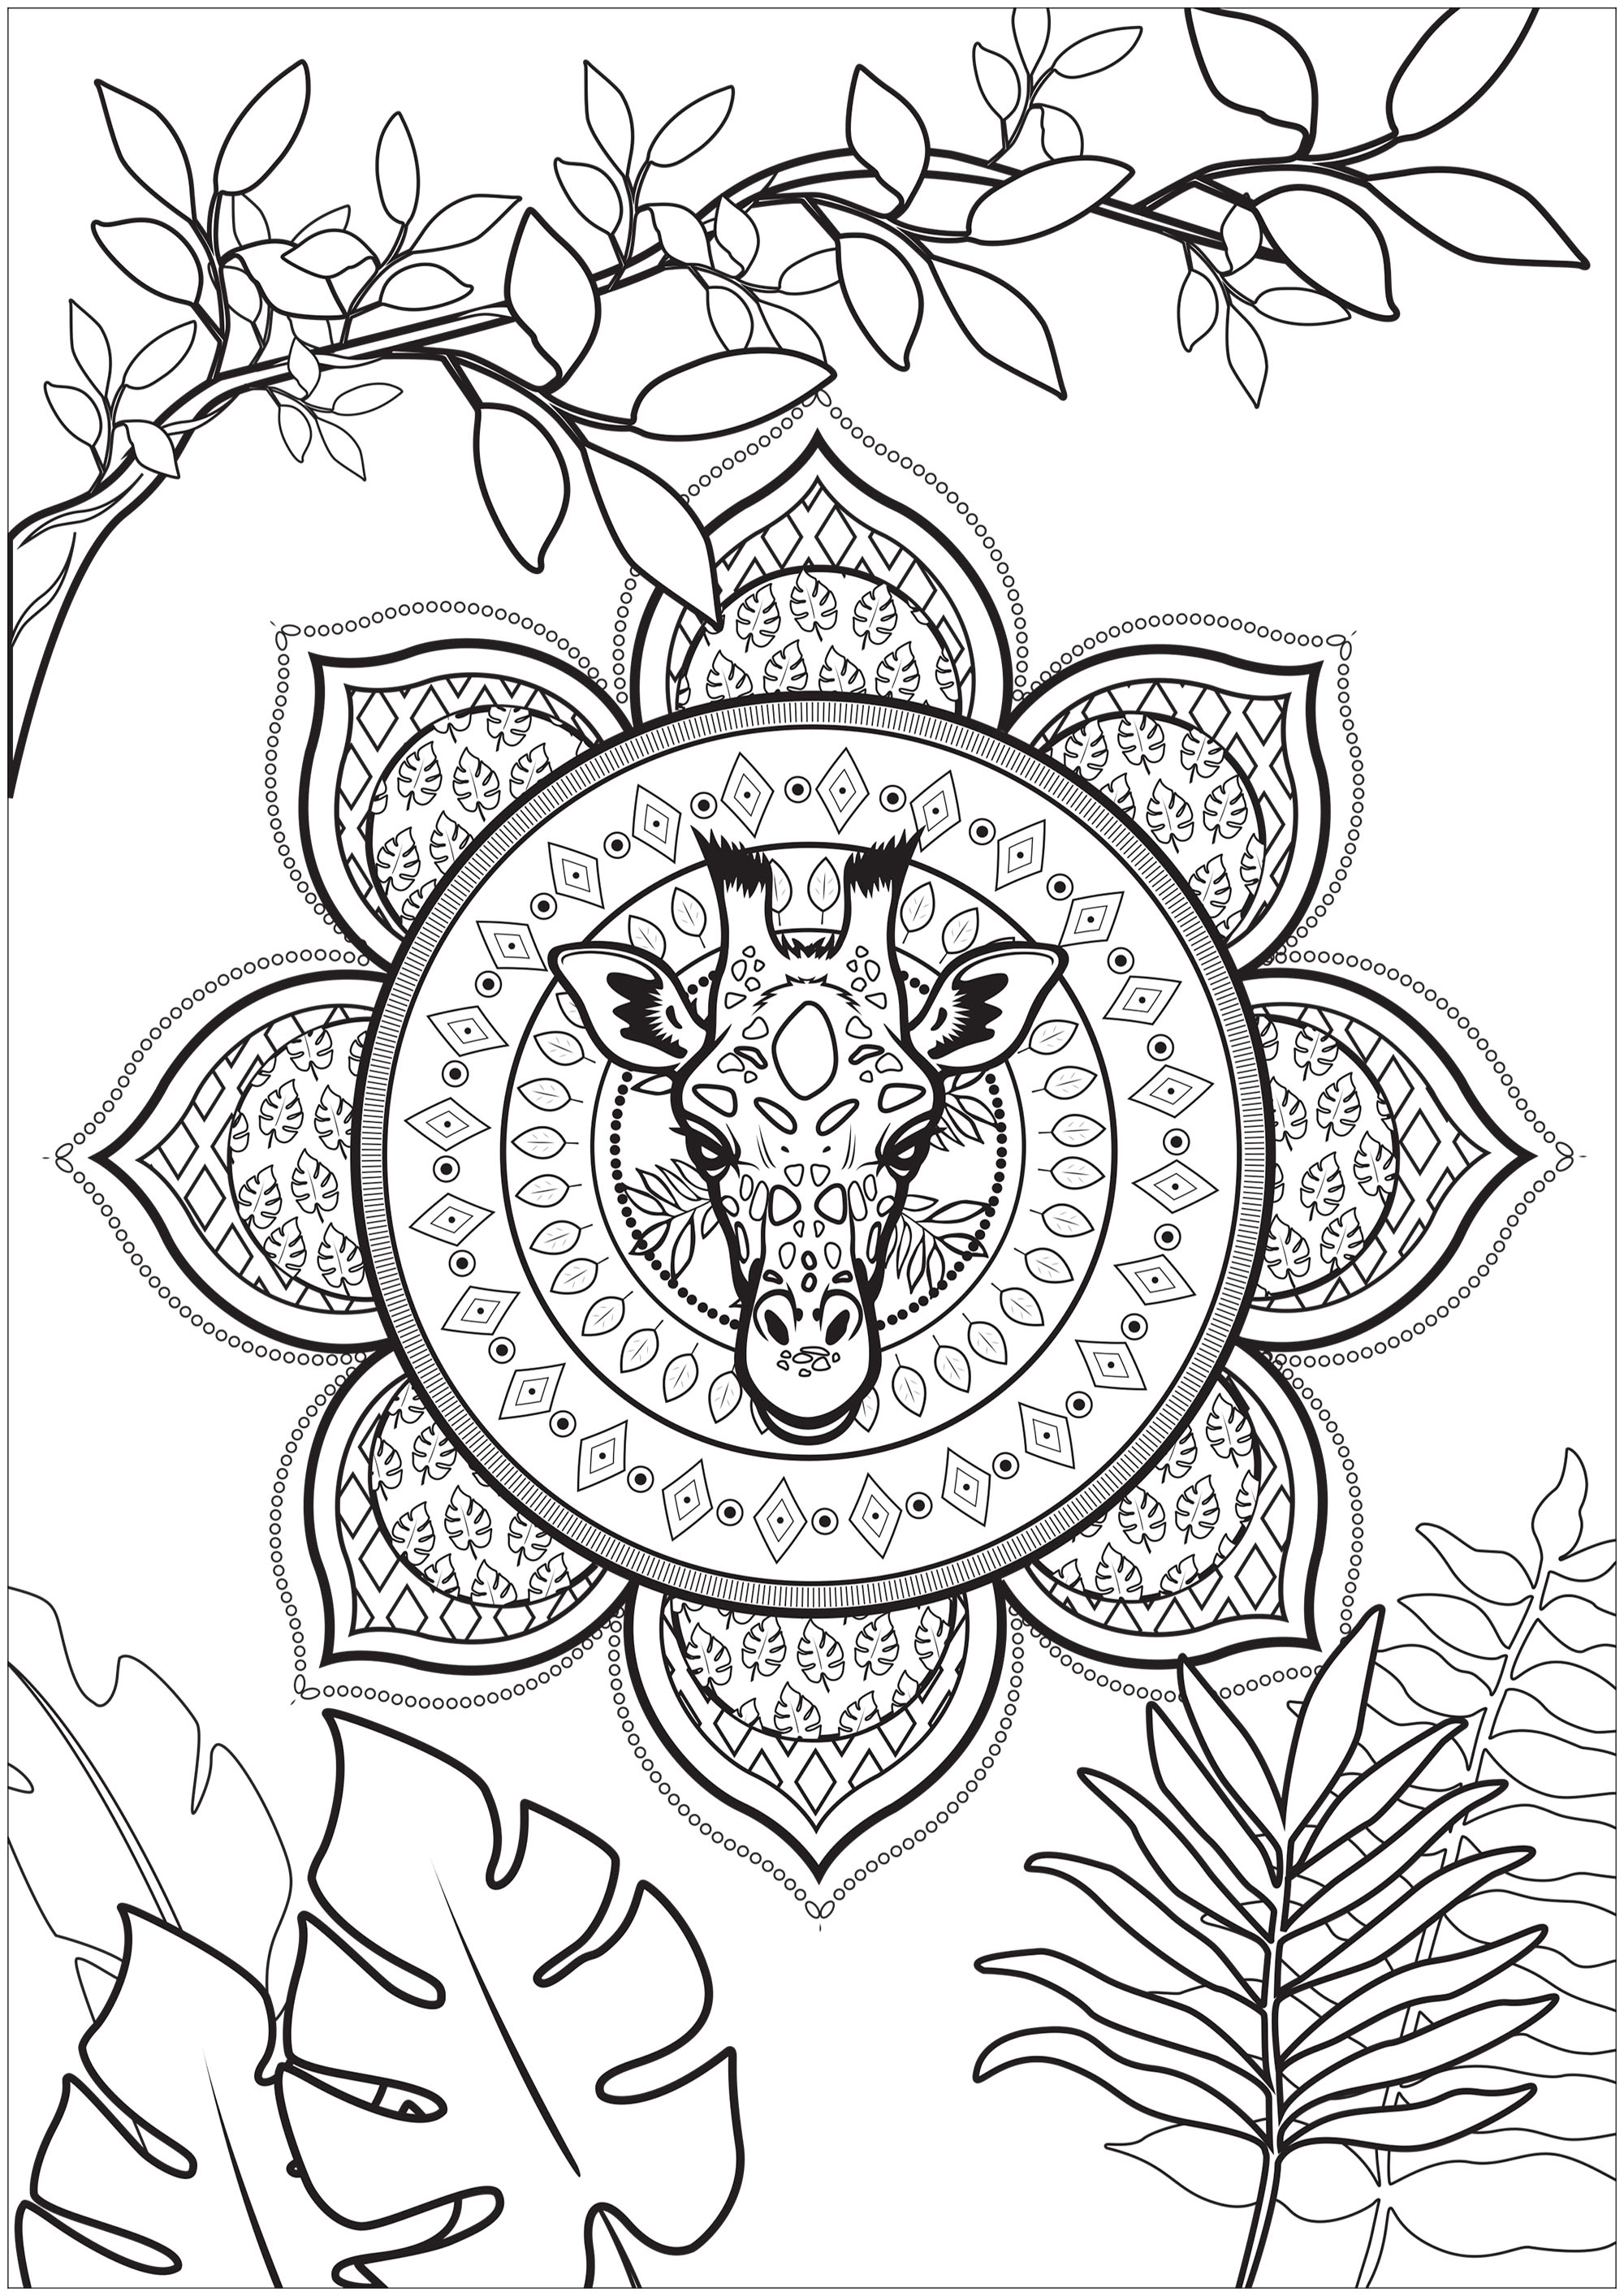 Coloring of a giraffe head embedded in a tropical mandala with pretty branches and leaves to color